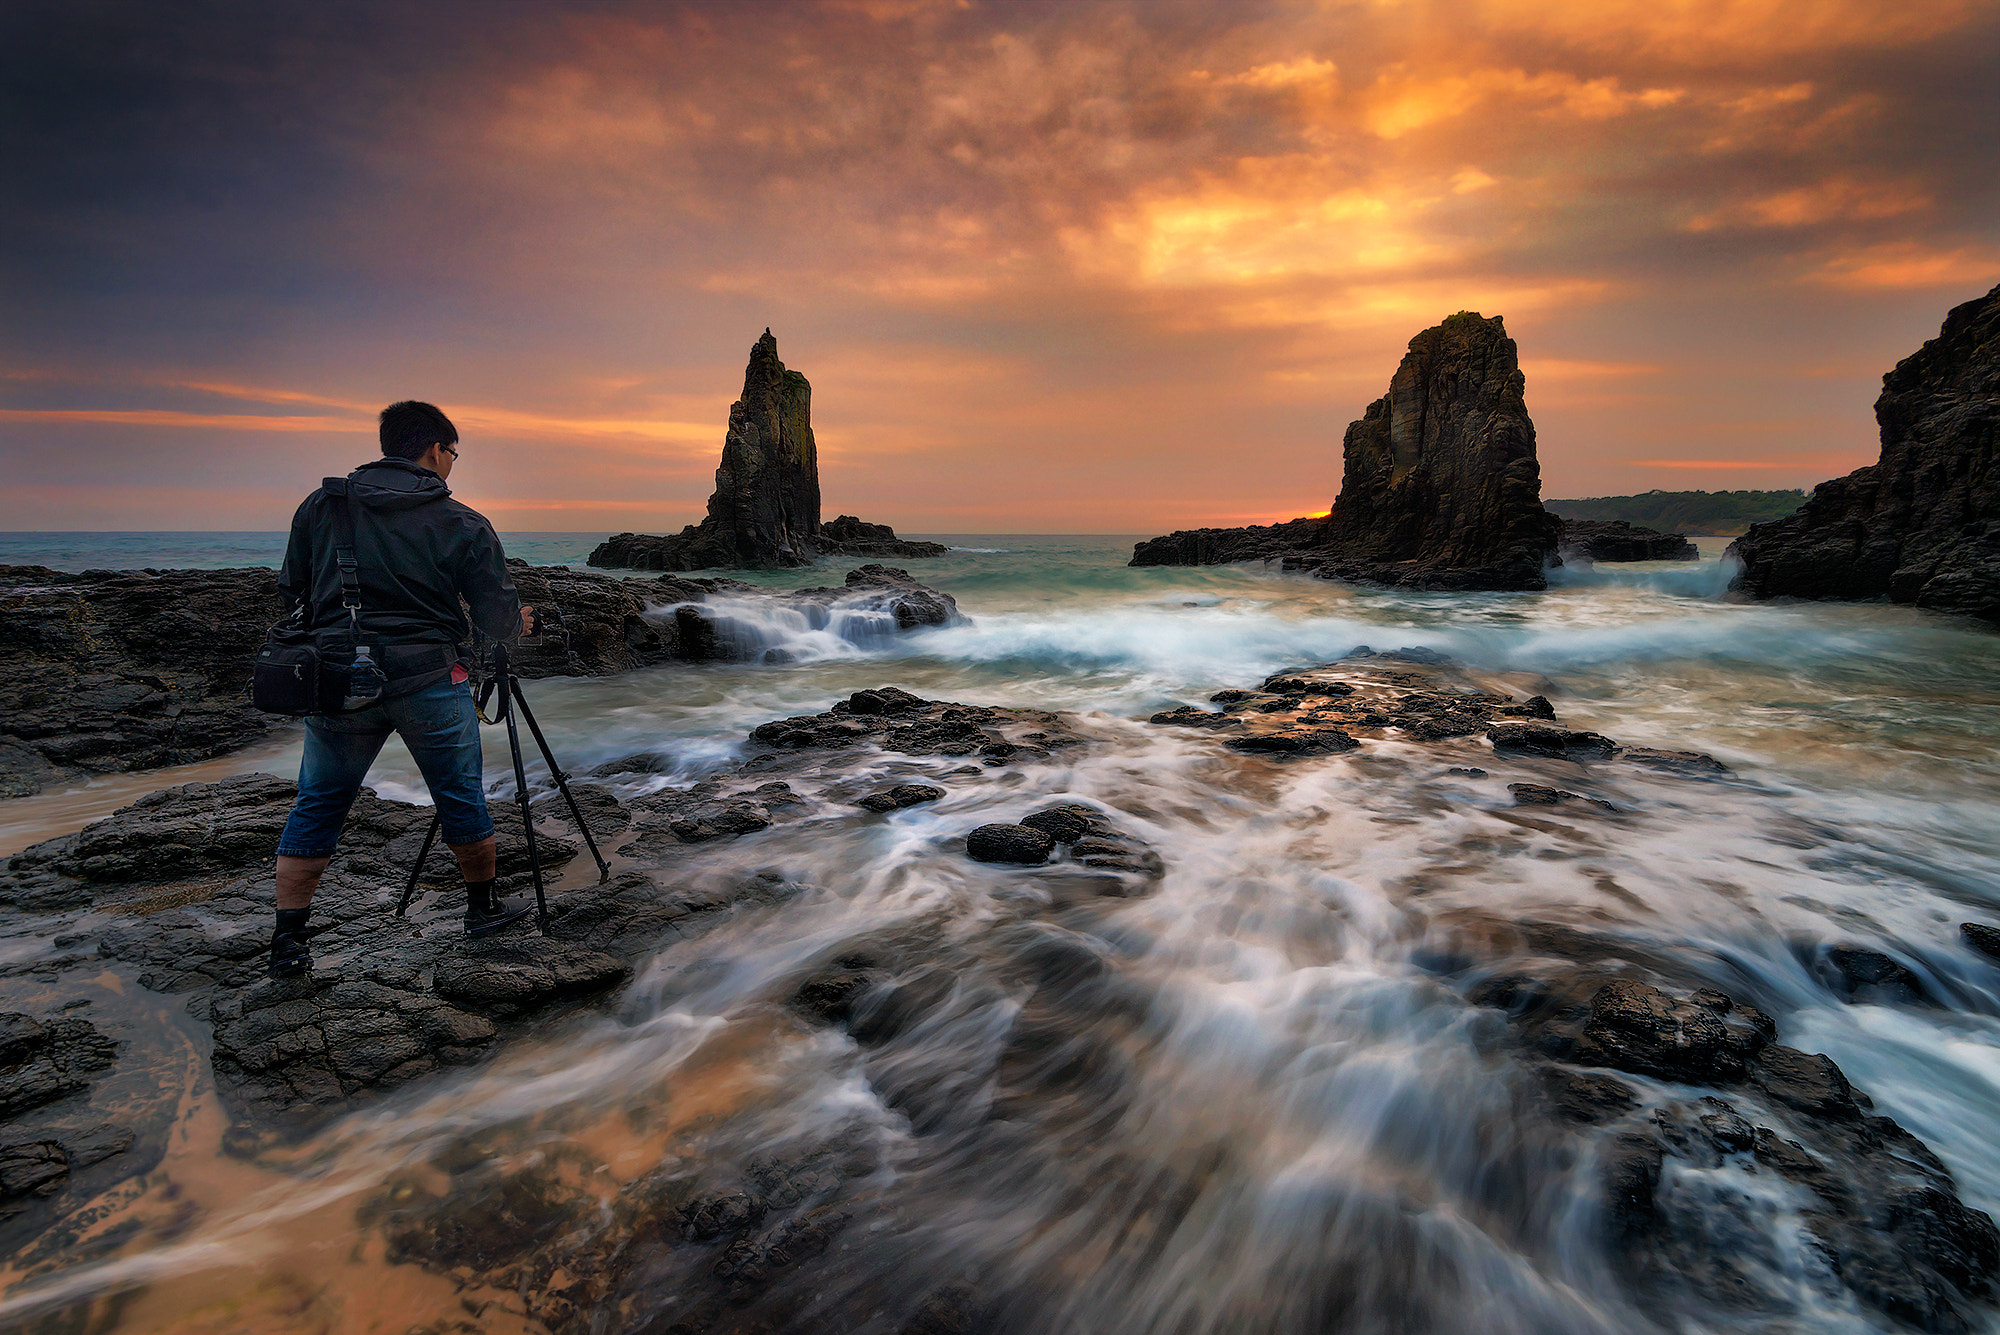 Photograph Seascape Master by Goff Kitsawad on 500px